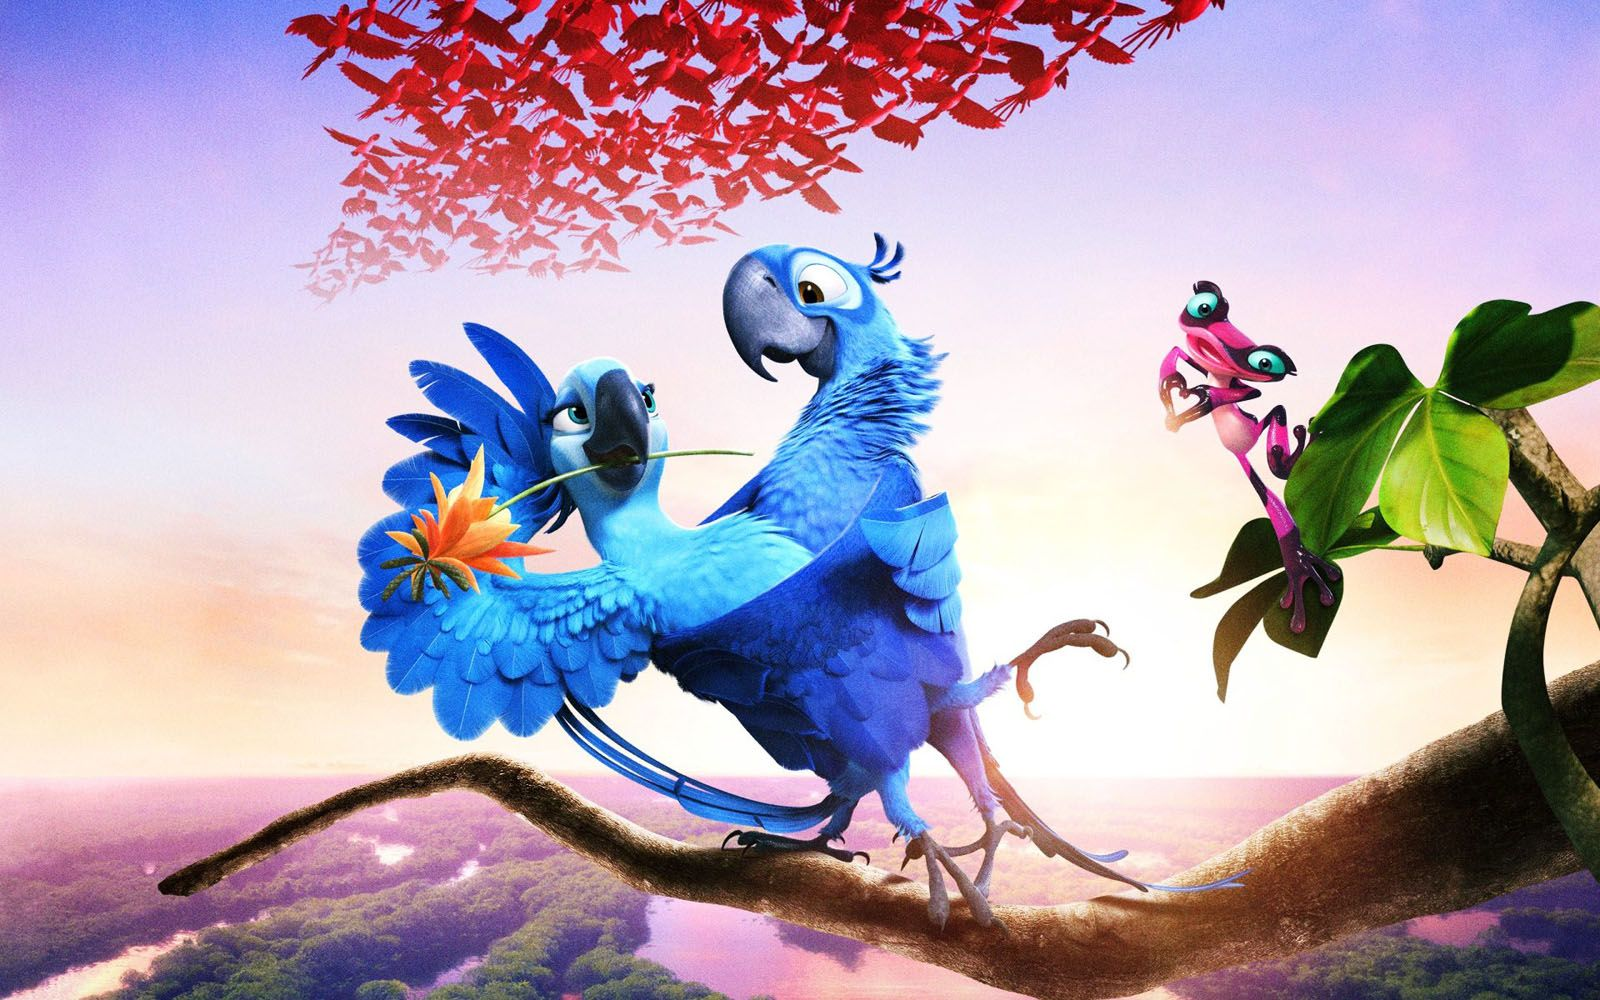 Rio 2 wallpaper 2g 16001000 mickey y sus amigos rio 2 wallpapers find best latest rio 2 wallpapers in hd for your pc desktop background mobile phones voltagebd Choice Image